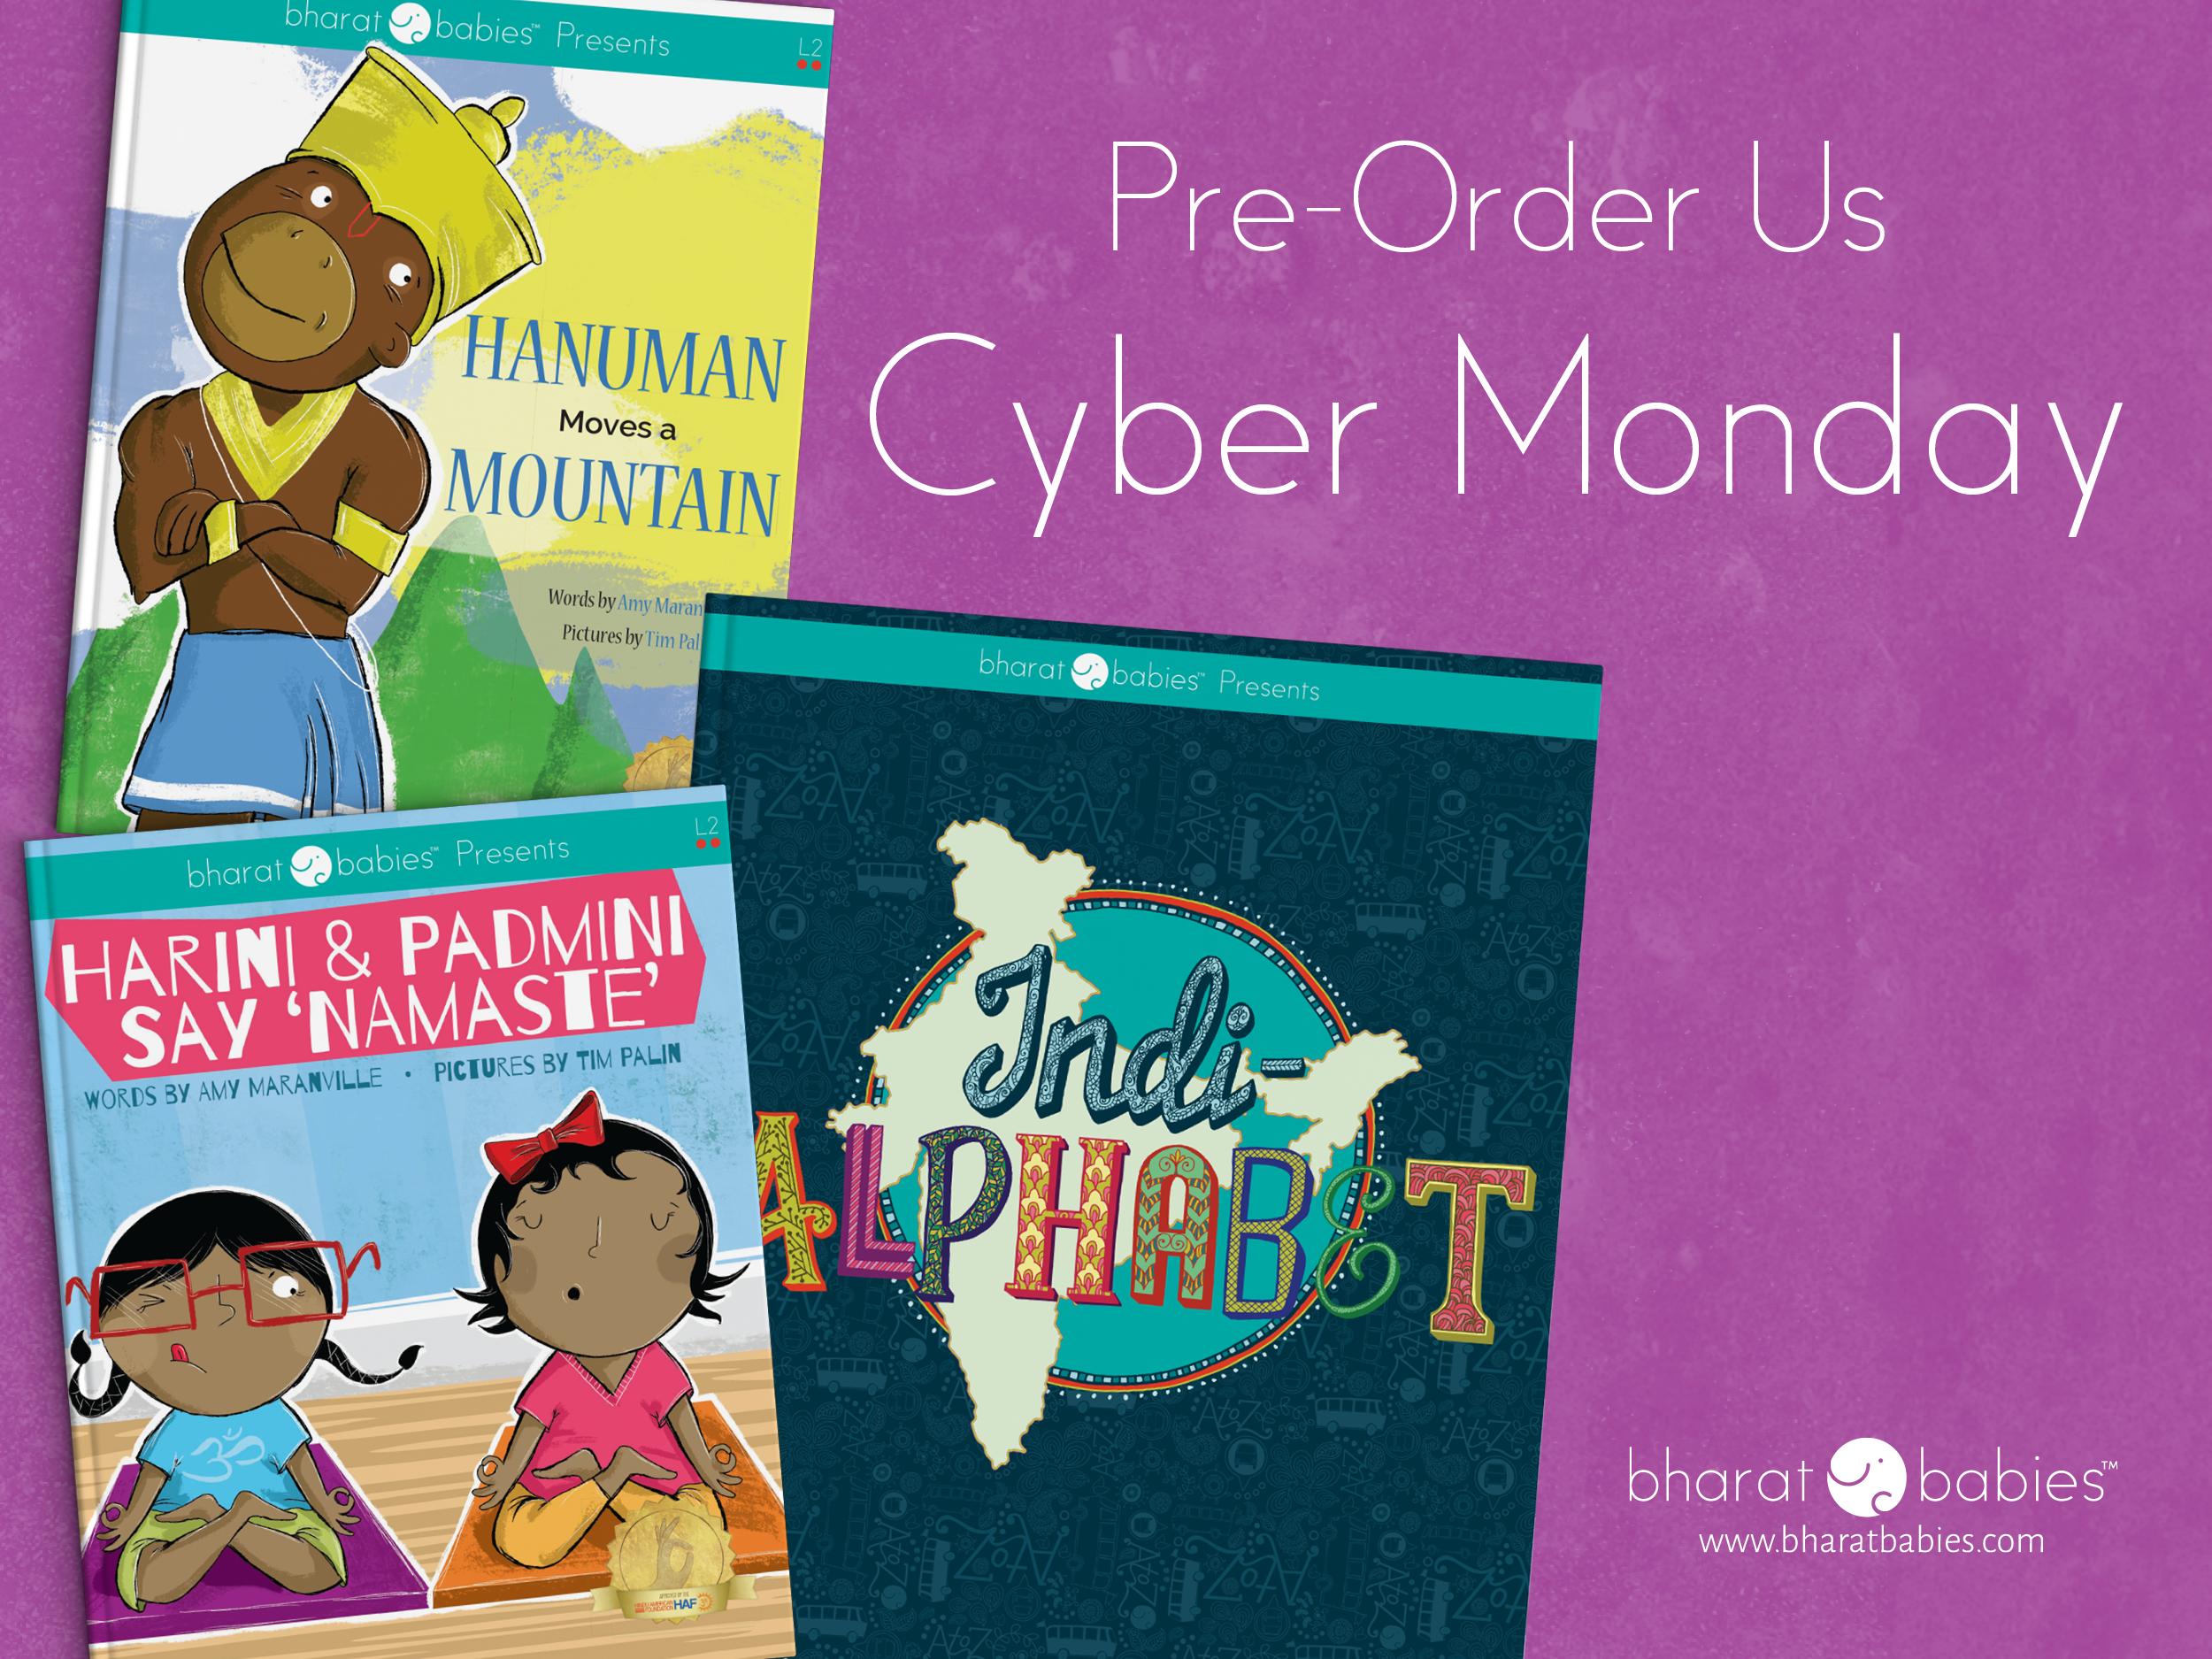 Cyber Monday with Bharat Babies